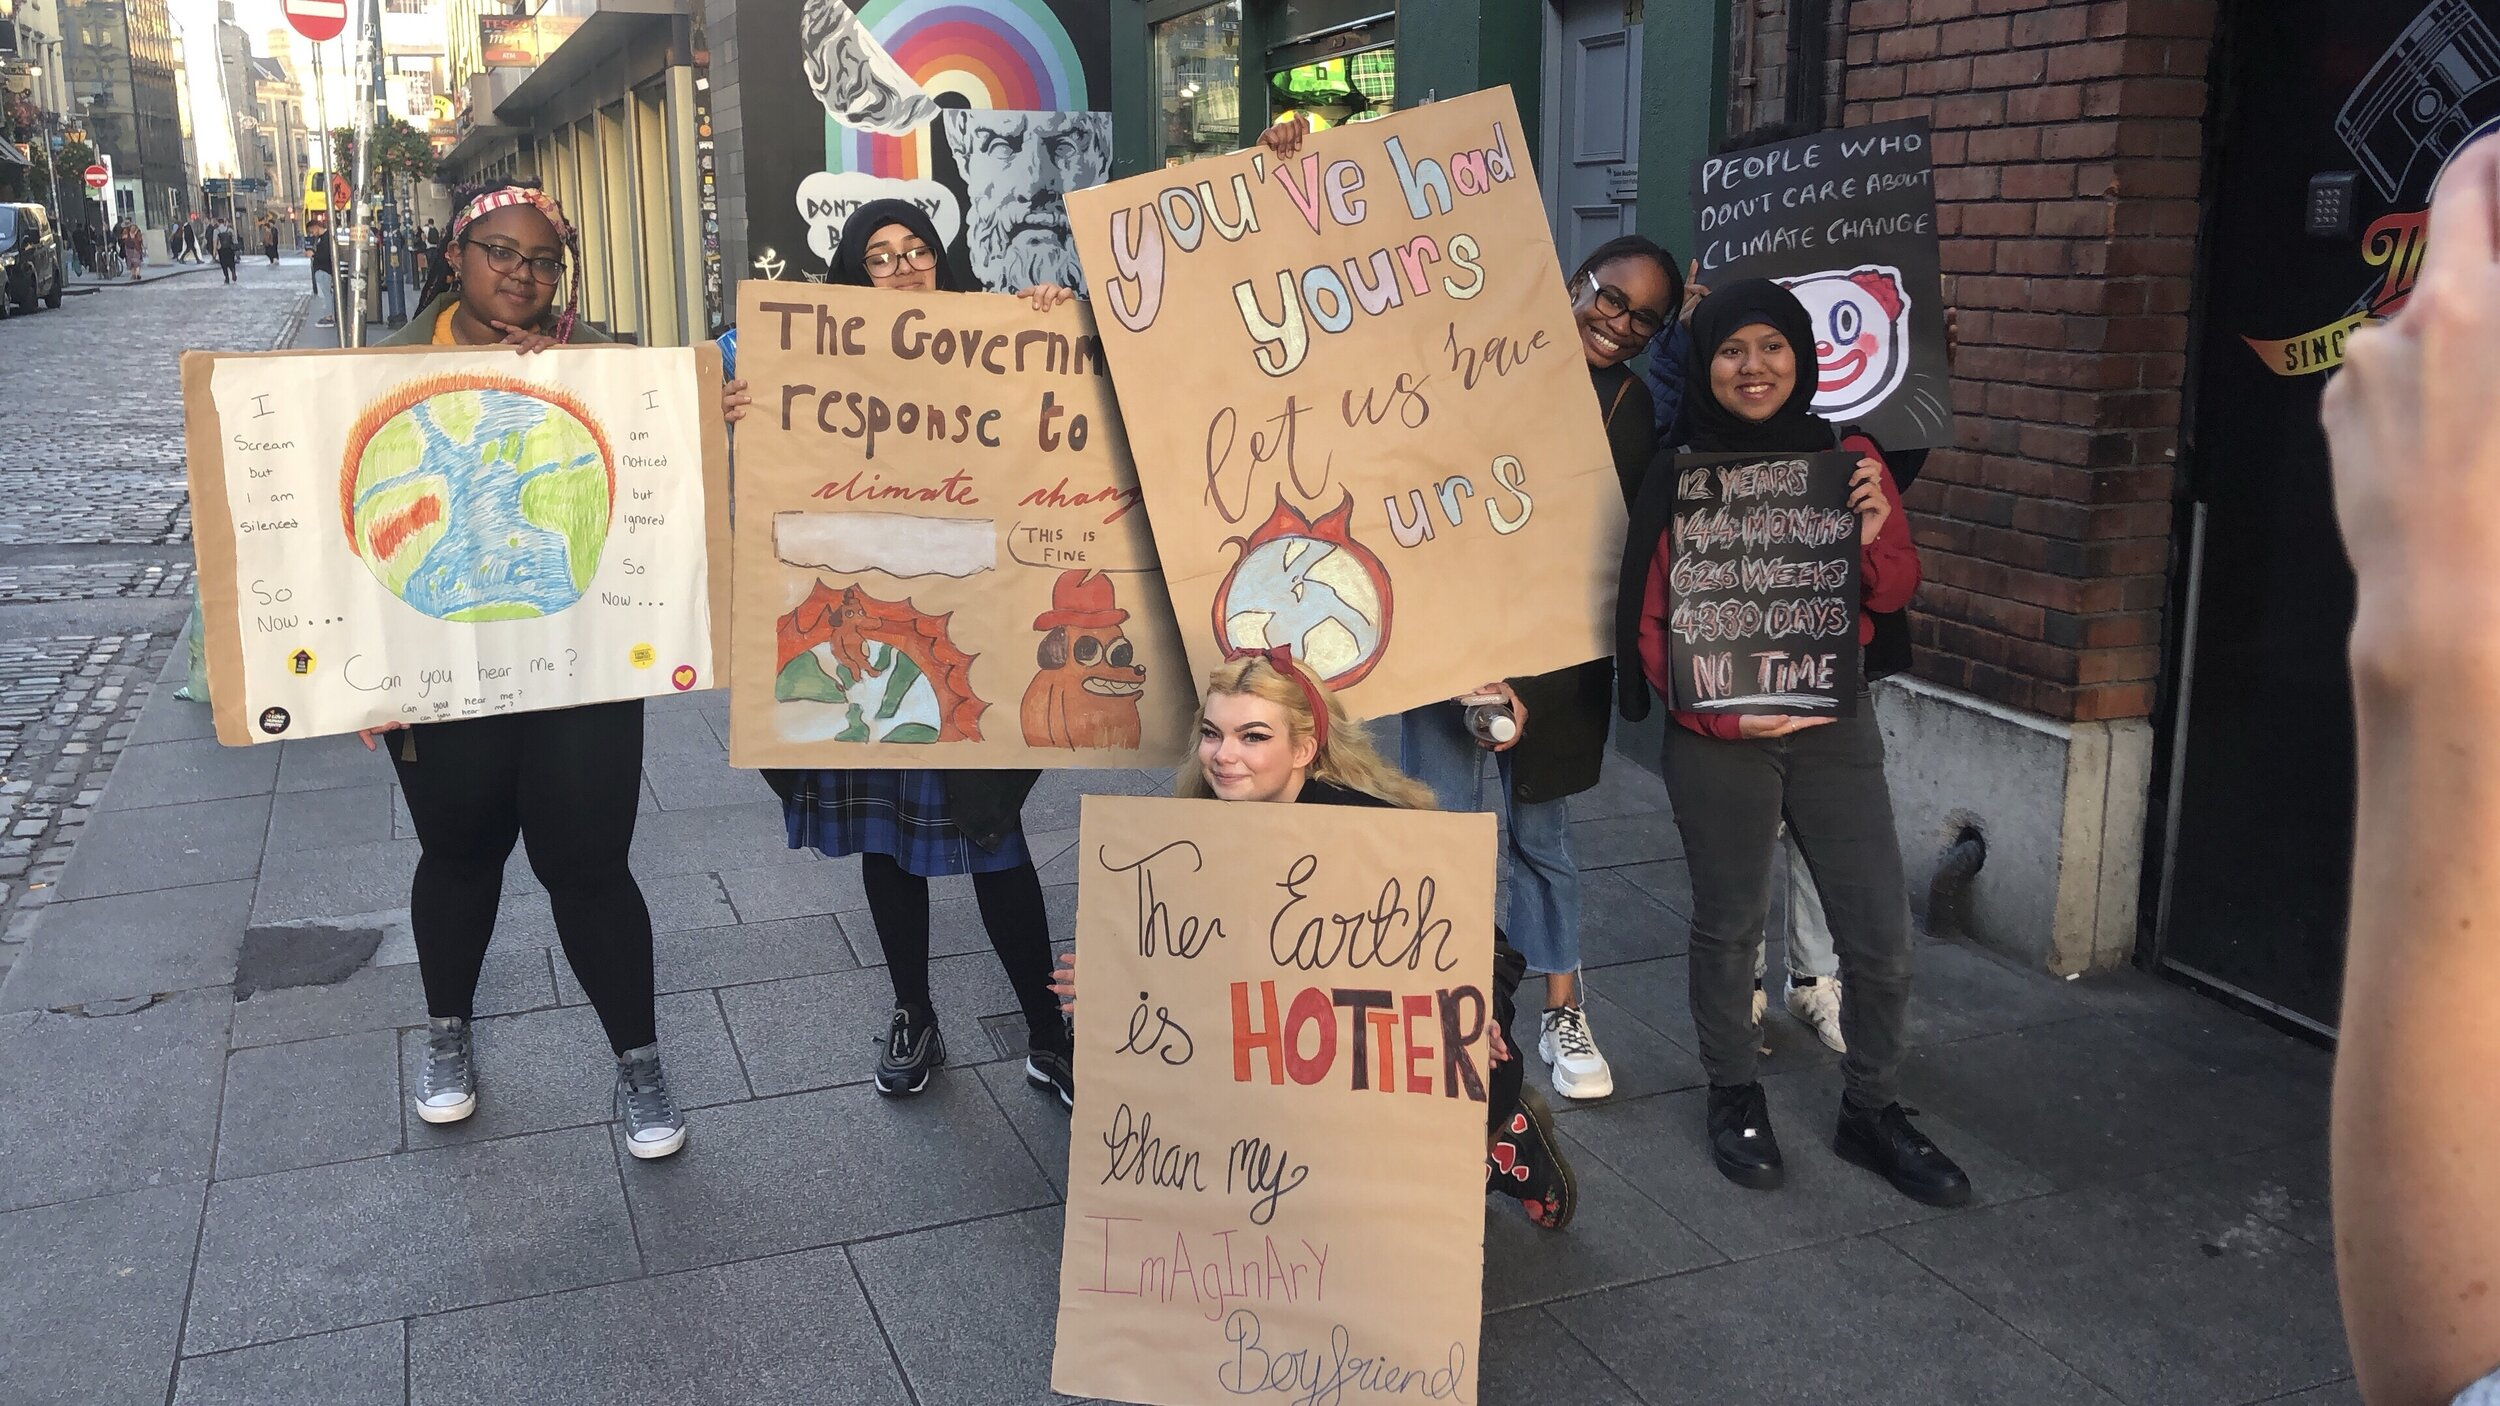 Students went into Amnesty International in Temple Bar to design placards after school for the global climate change protest on Friday, which they will attend. Students were inspired by Greta Thunberg and the Fridays for Future movement.